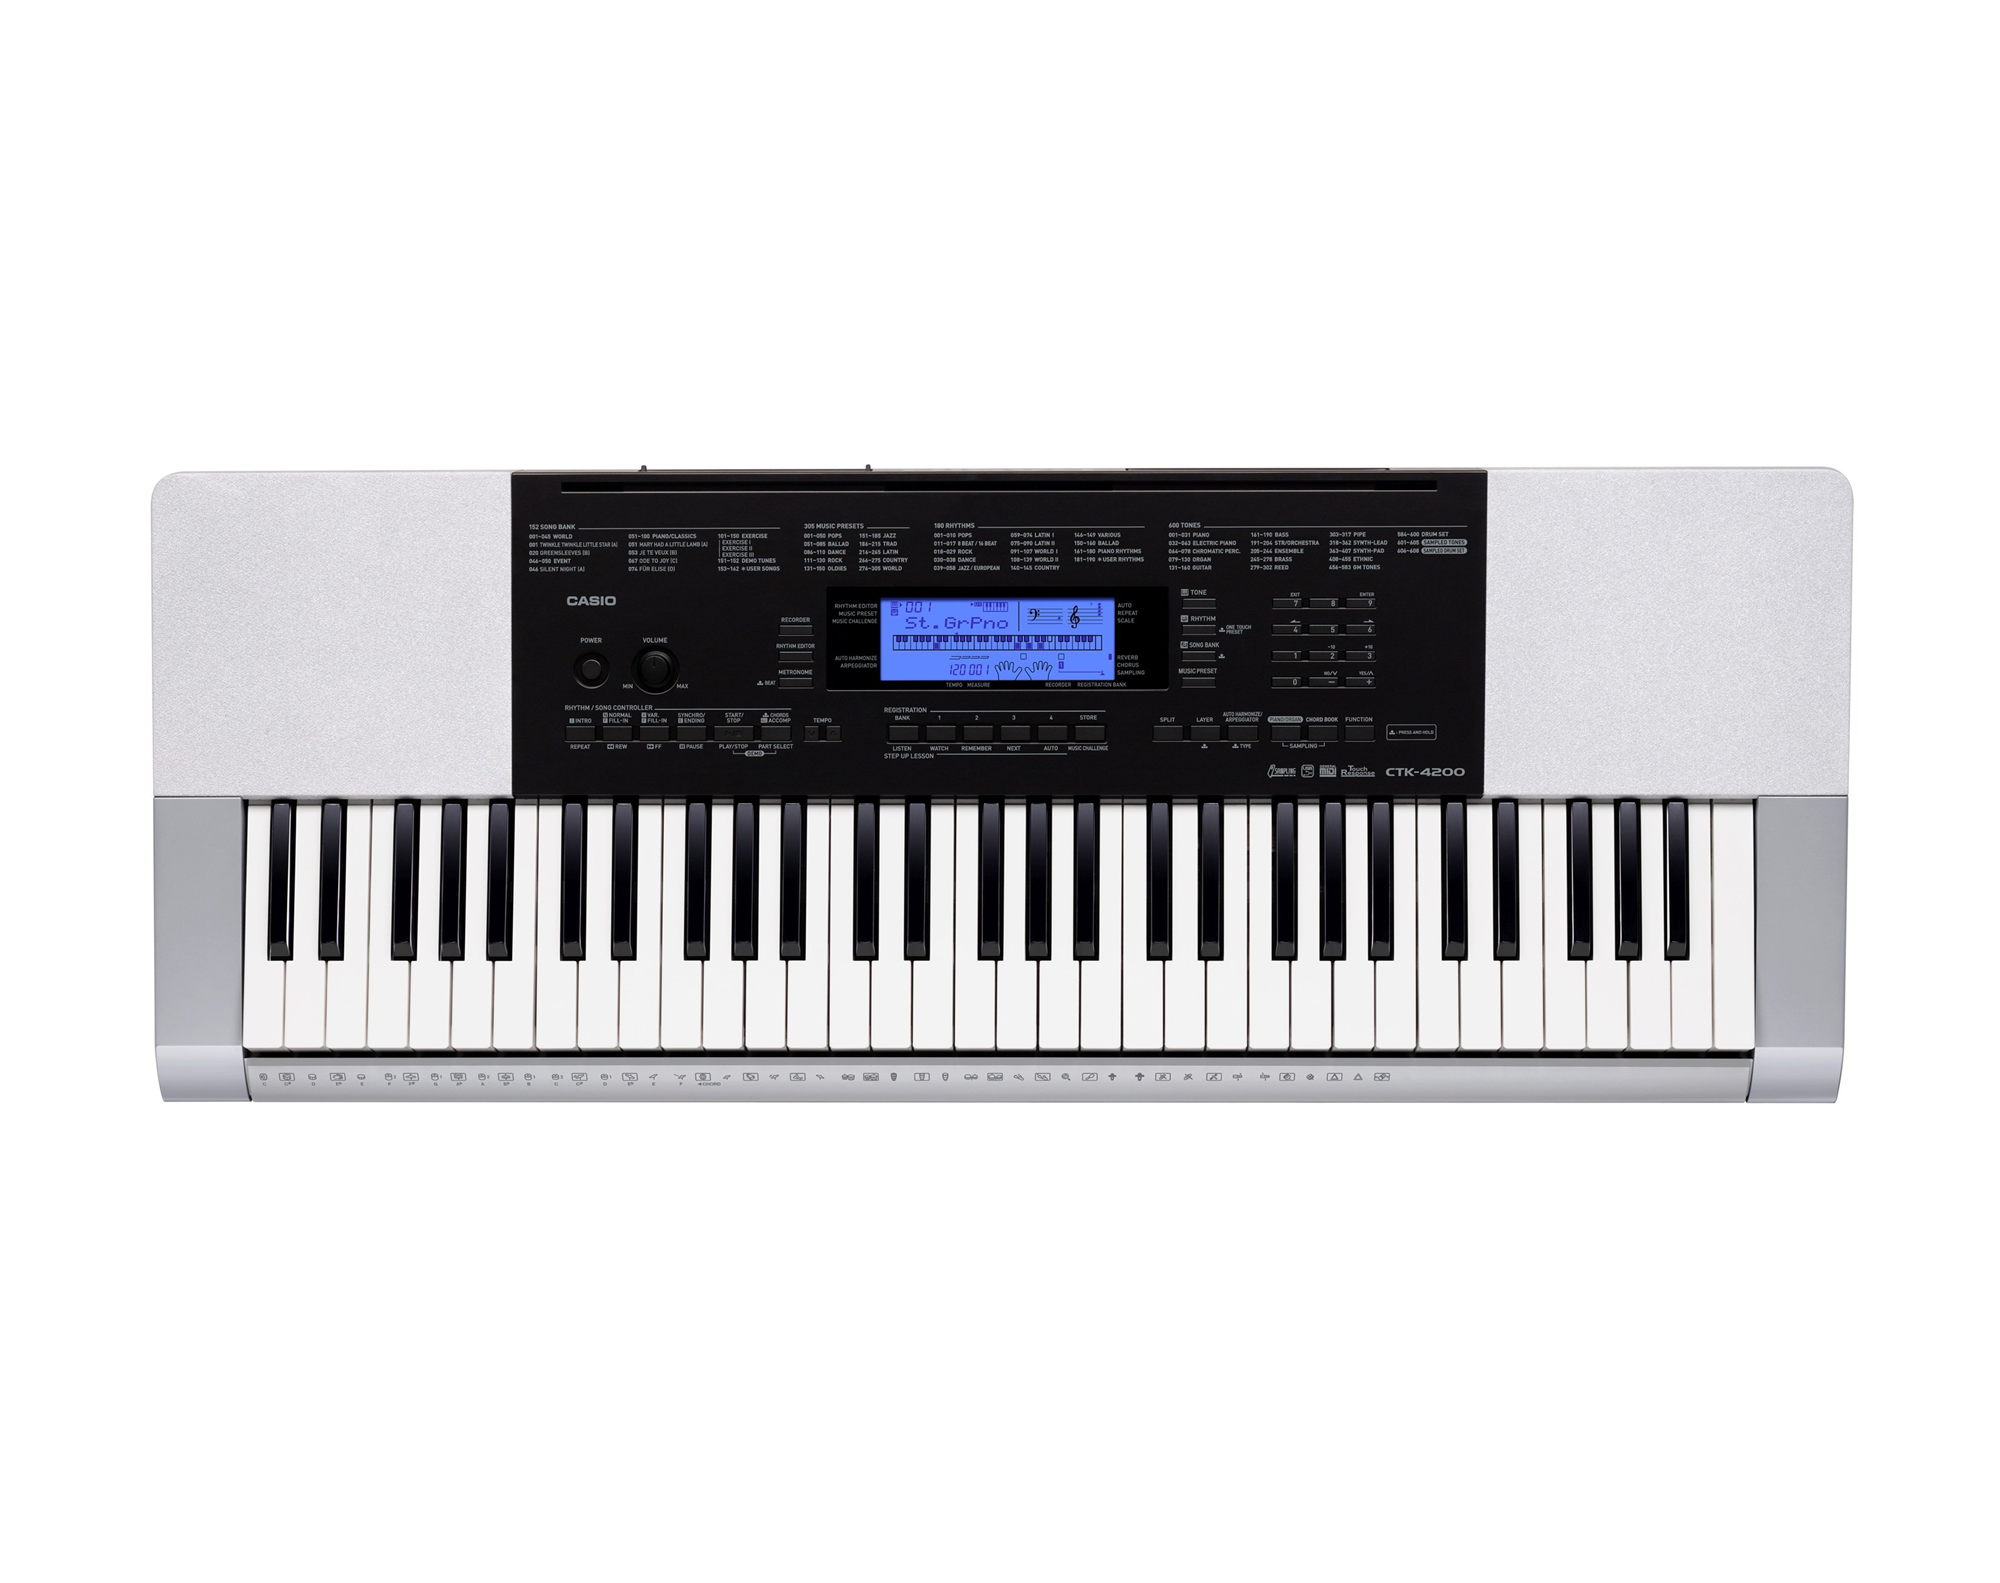 http://www.danorgan.com.vn/upload/images_products/large/Dan-Organ-Casio-CTK-4200.jpg